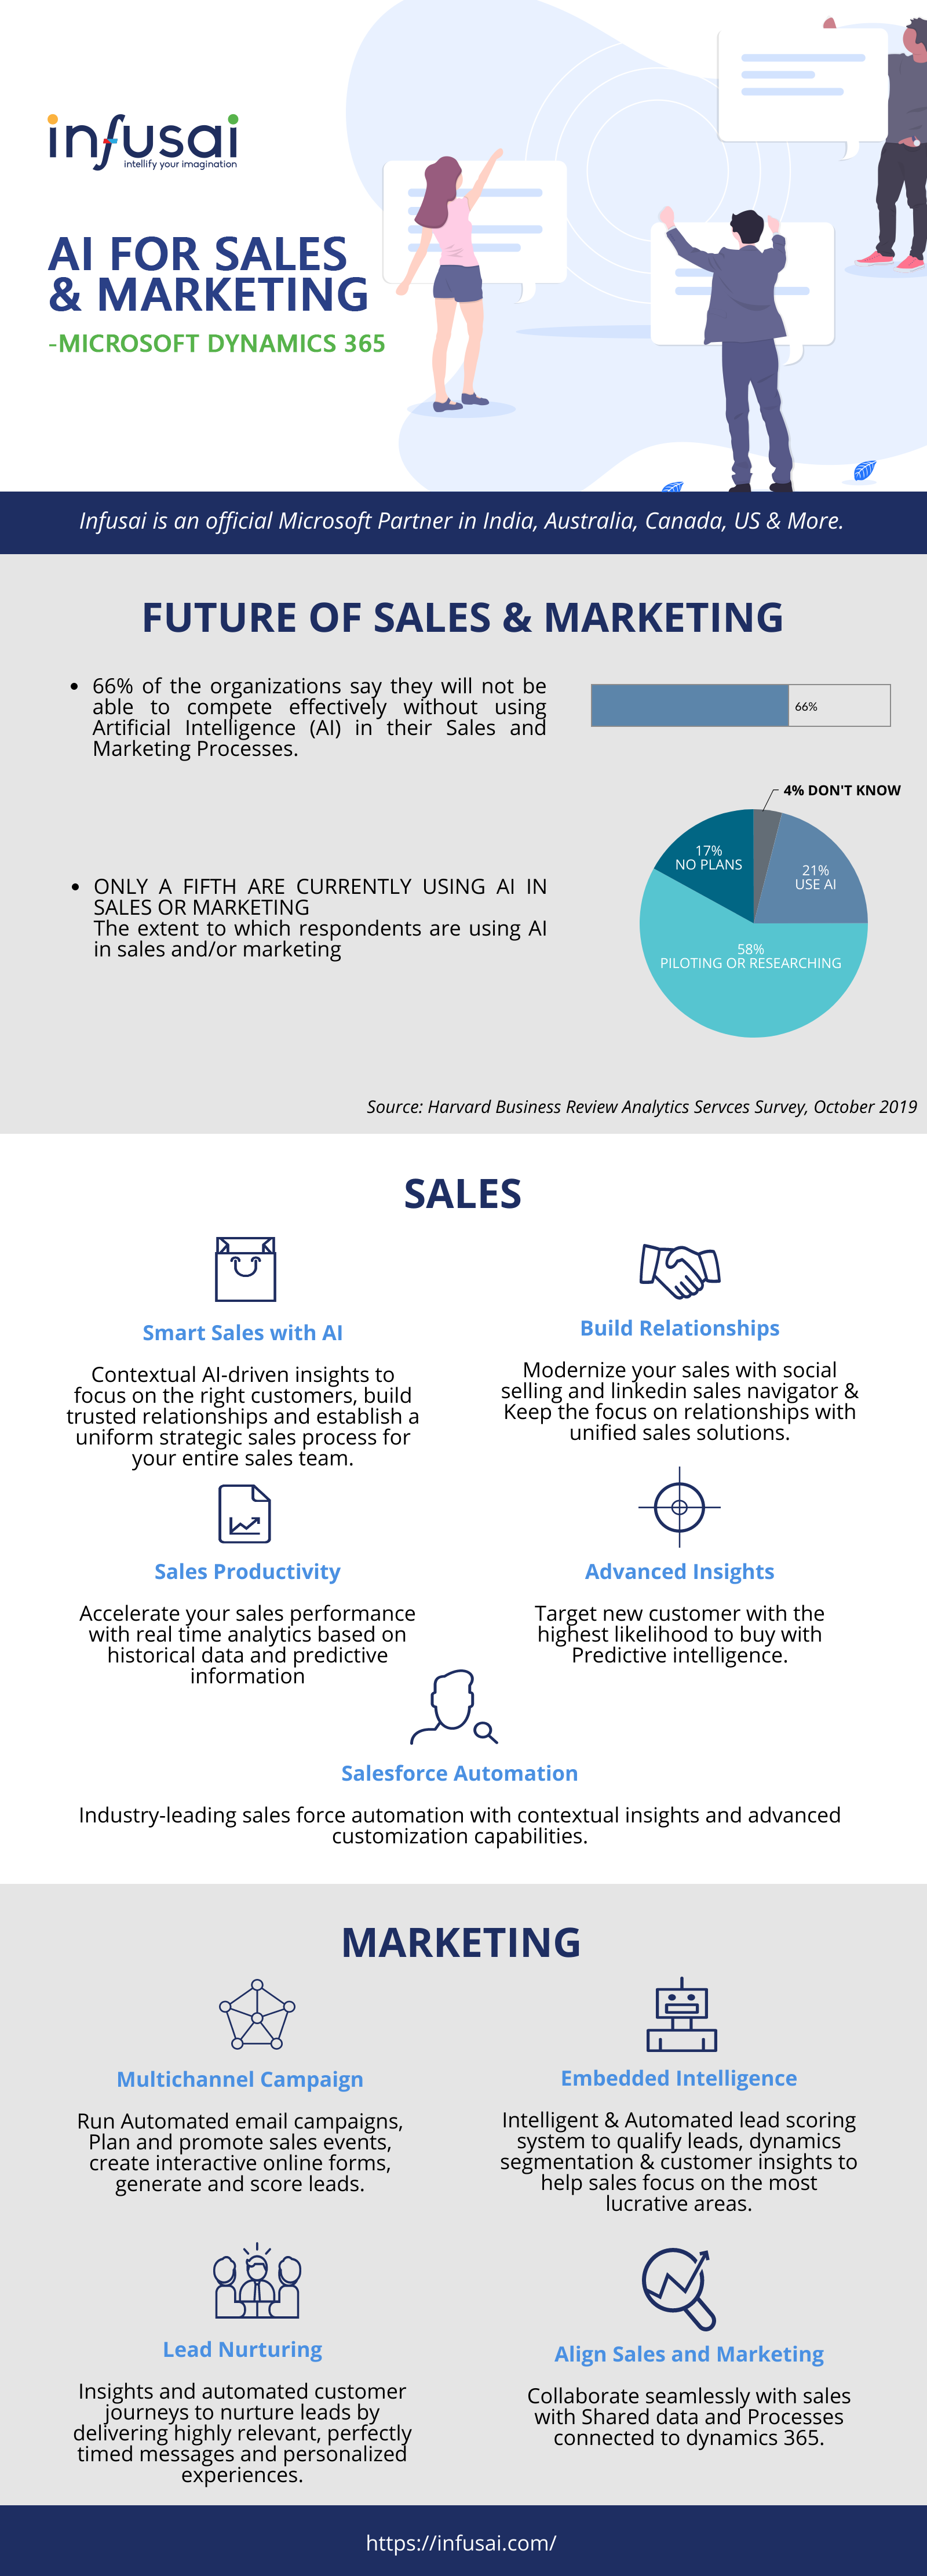 Microsoft Dynamics 365 sales and marketing - Infusai Solutions